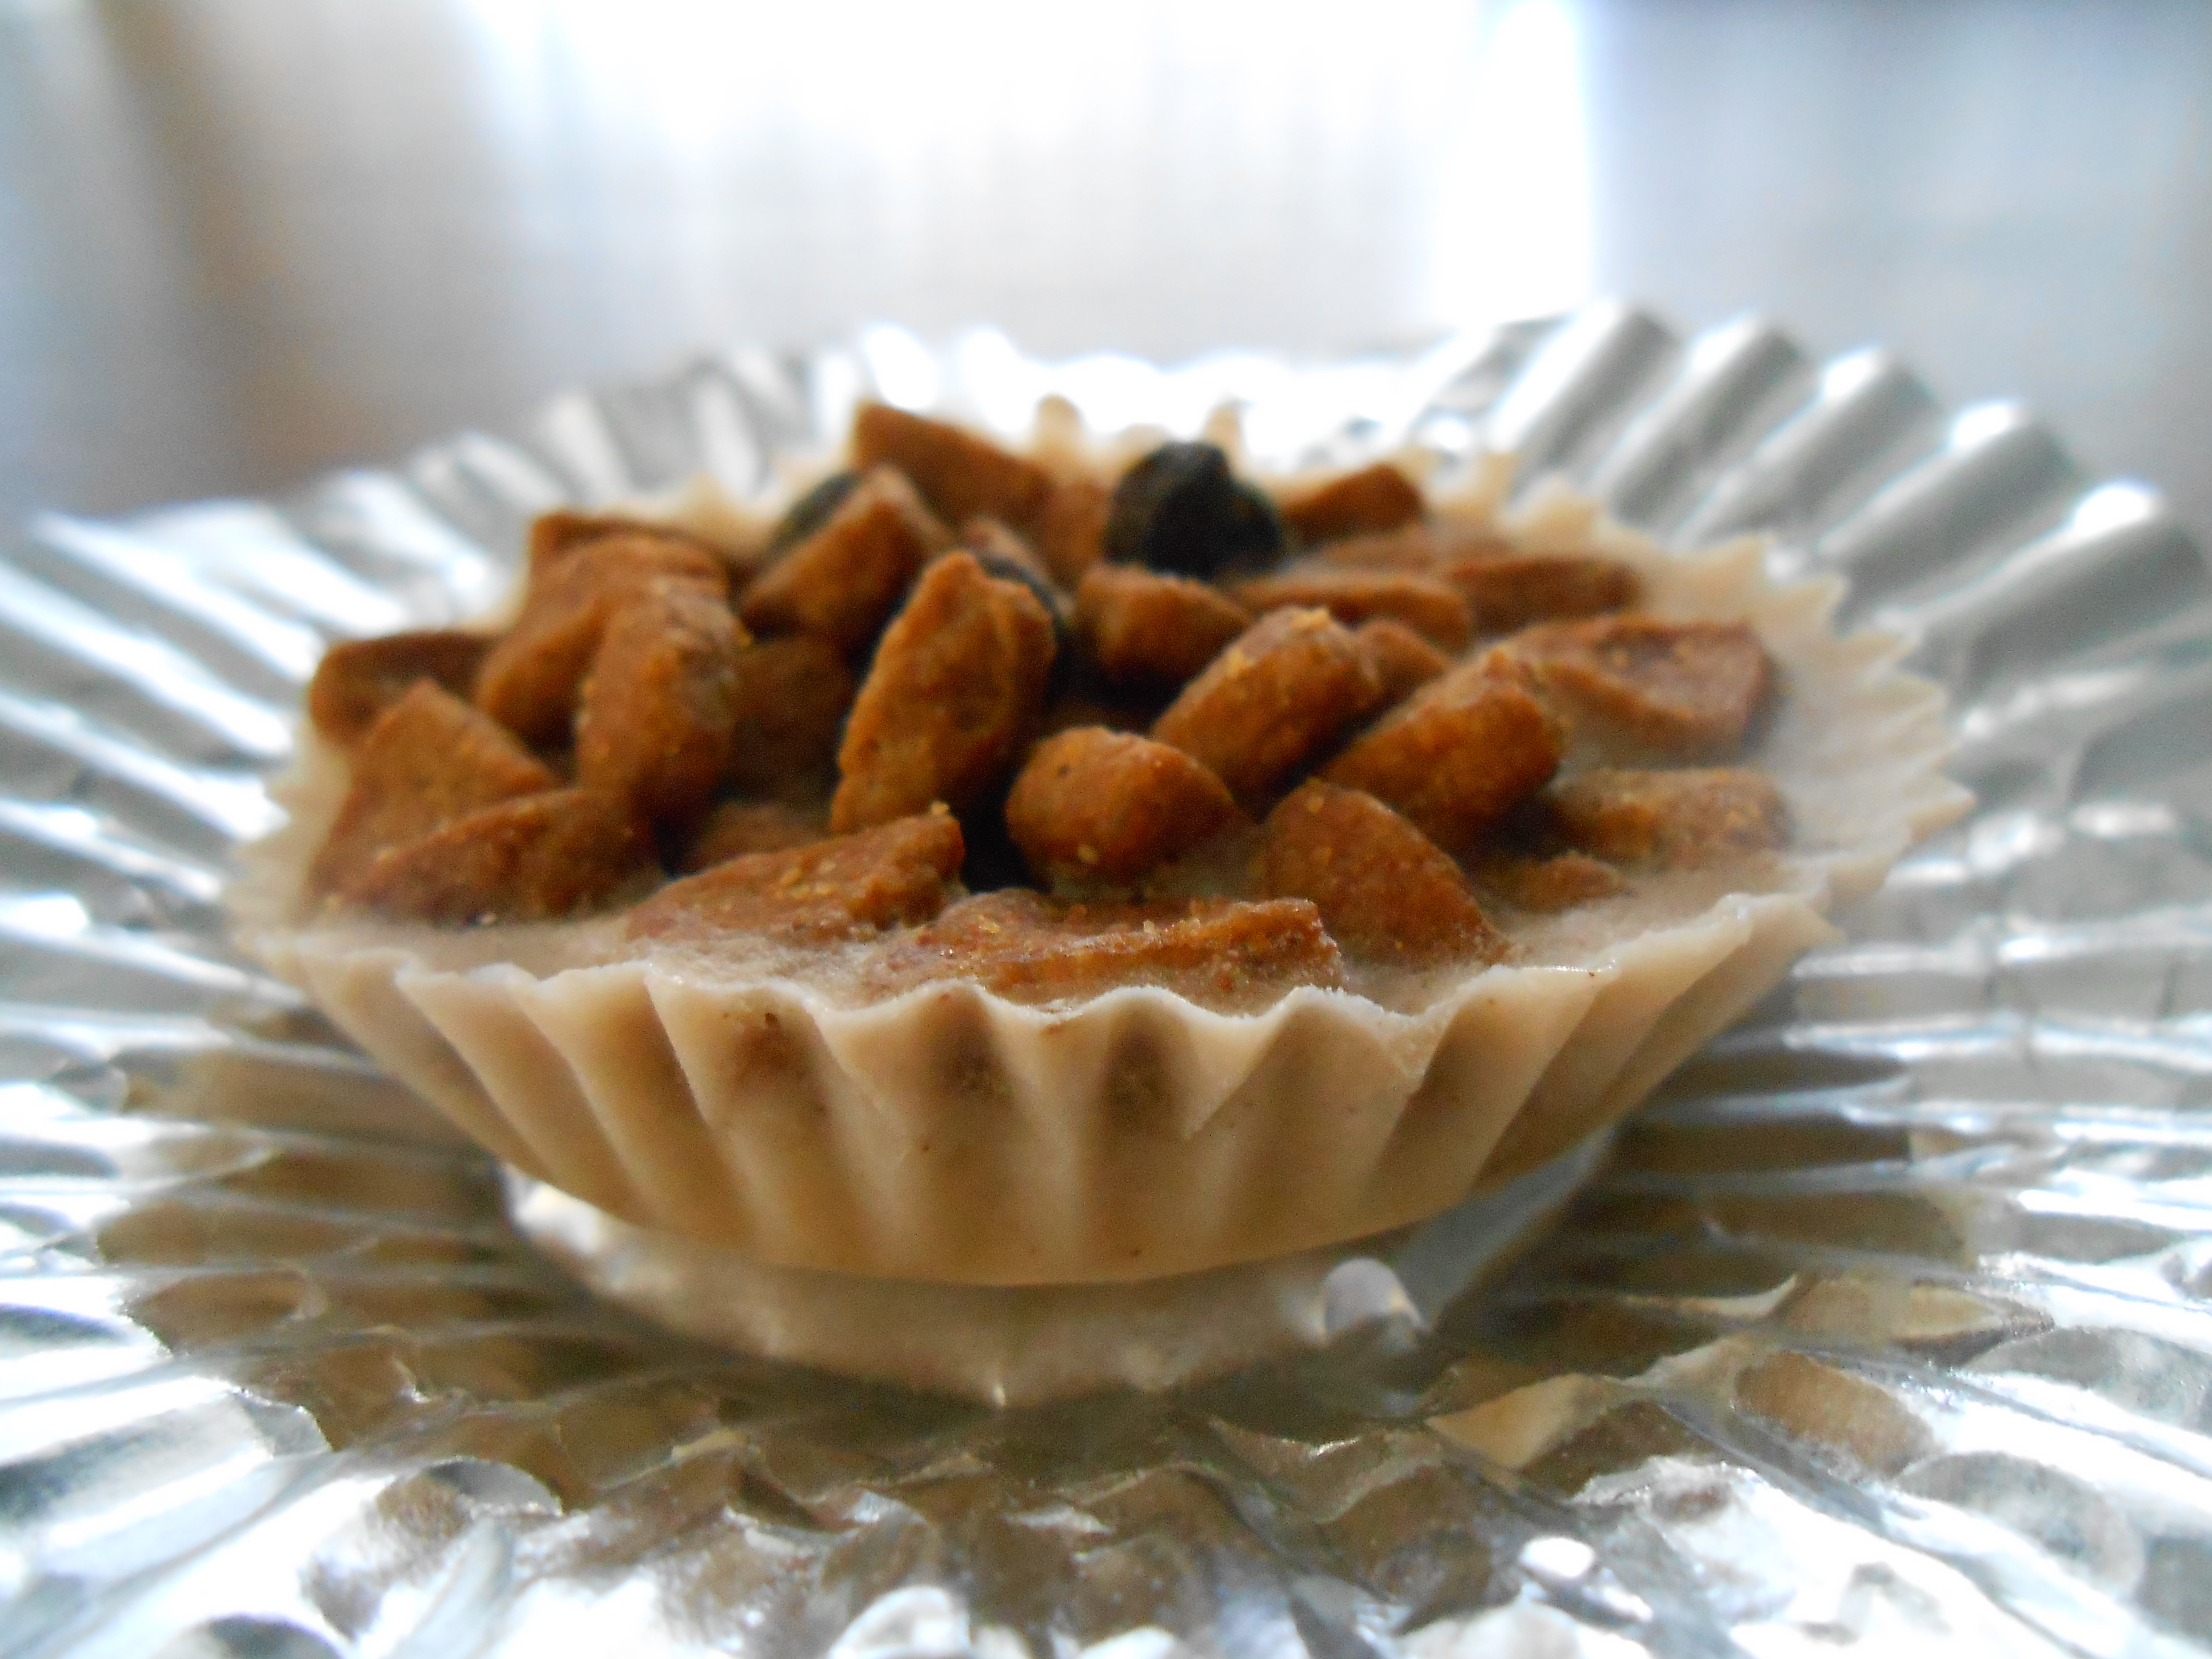 Morkie pawsitively good life apple banana smash peanut butter cups topped with kibble nvjuhfo Image collections